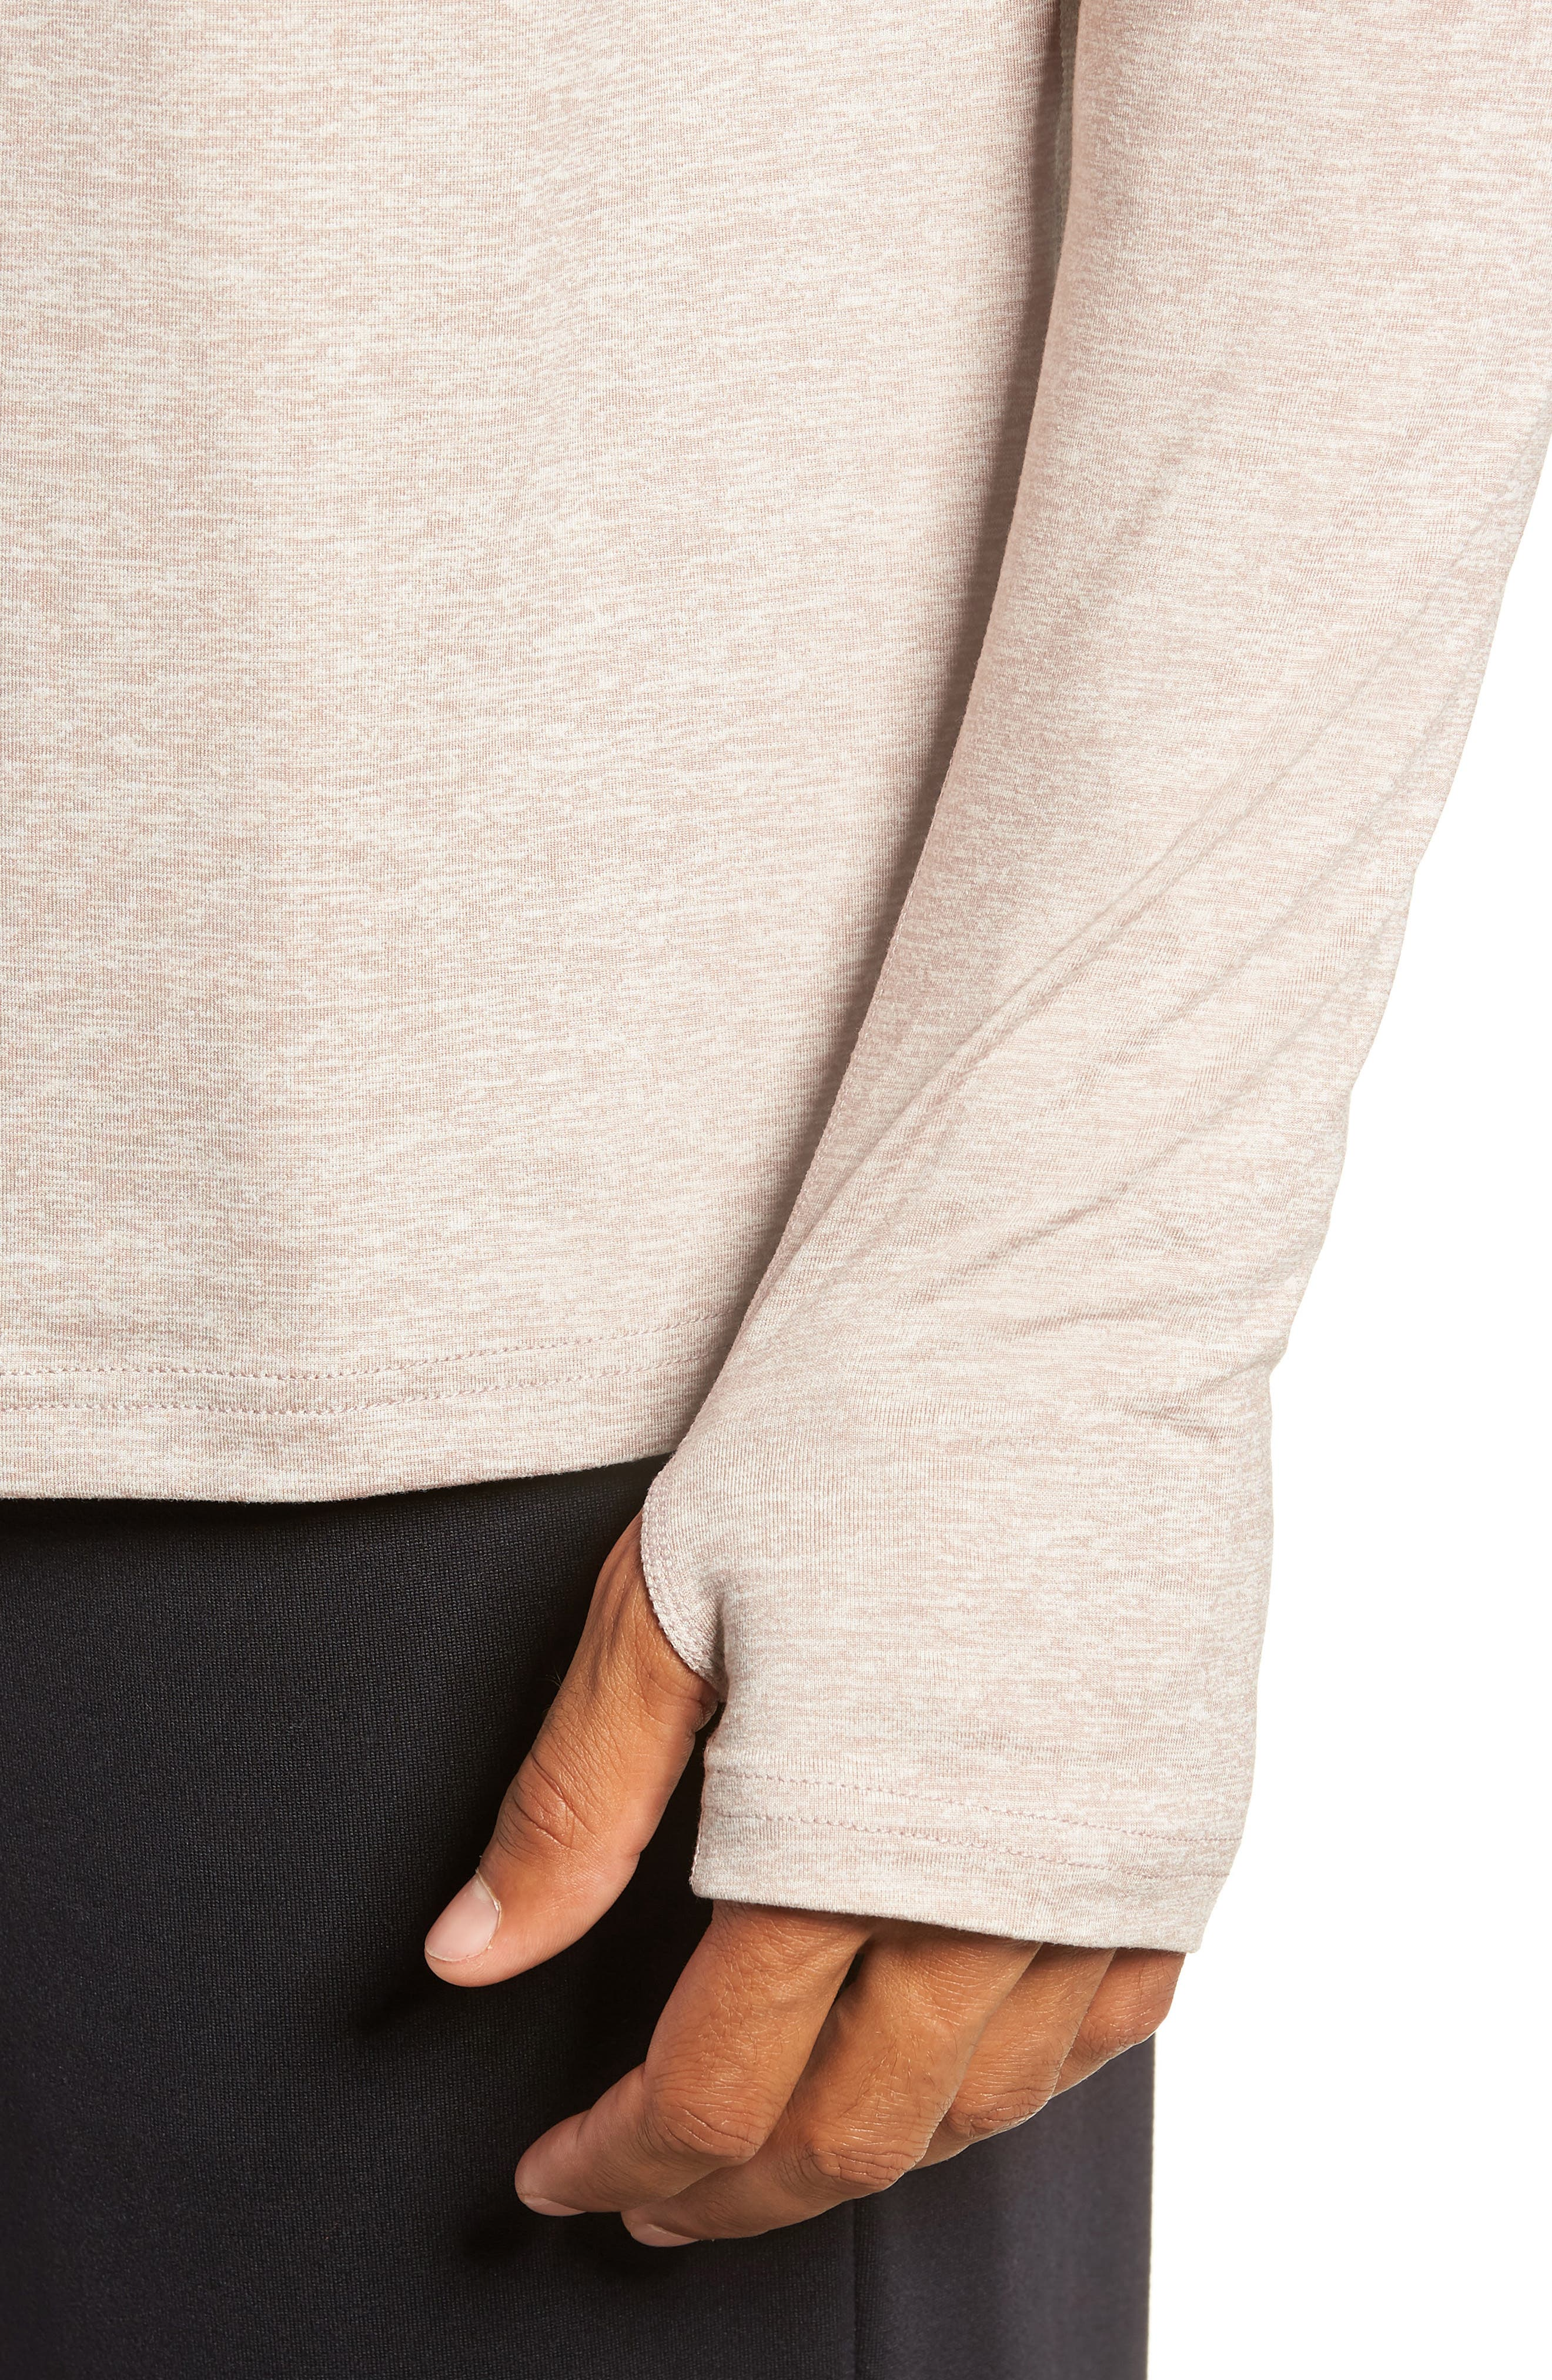 Element HZ 2.0 Performance Pullover,                             Alternate thumbnail 4, color,                             DIFFUSED TAUPE/ SAND/ HEATHER